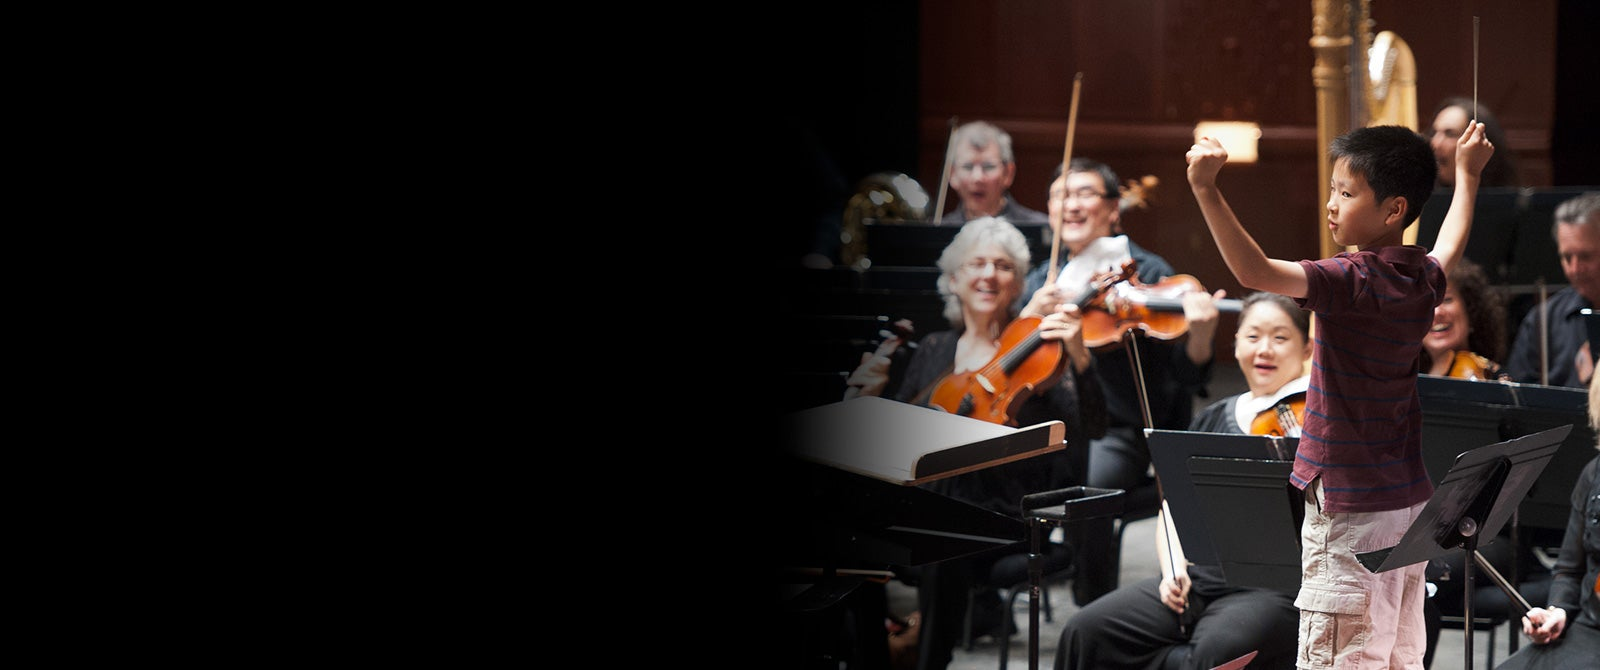 Best Violinist In The World 2020 Family: The 'New World' Symphony & Beyond! | New Jersey Symphony